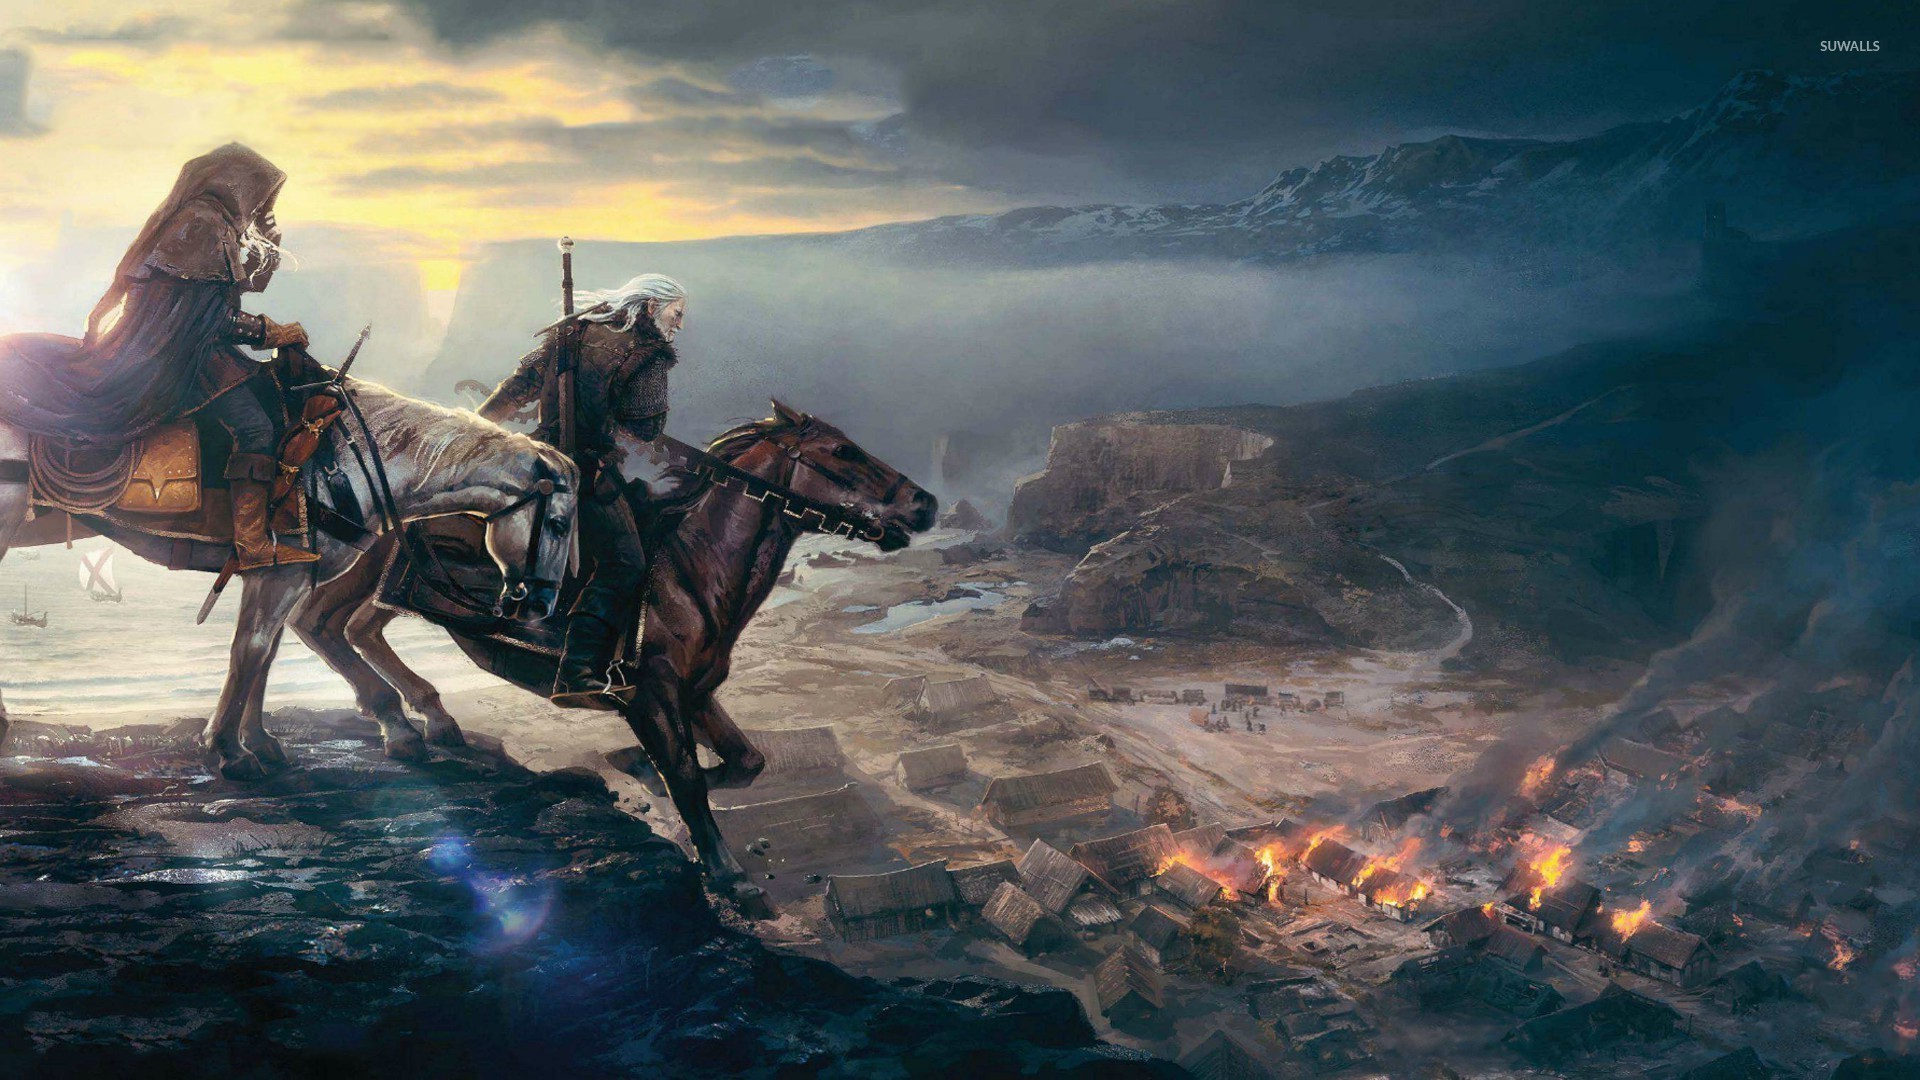 Photo of The Witcher 3 Is Coming to Next-Gen So You Can Put Another 100 Hours Into It